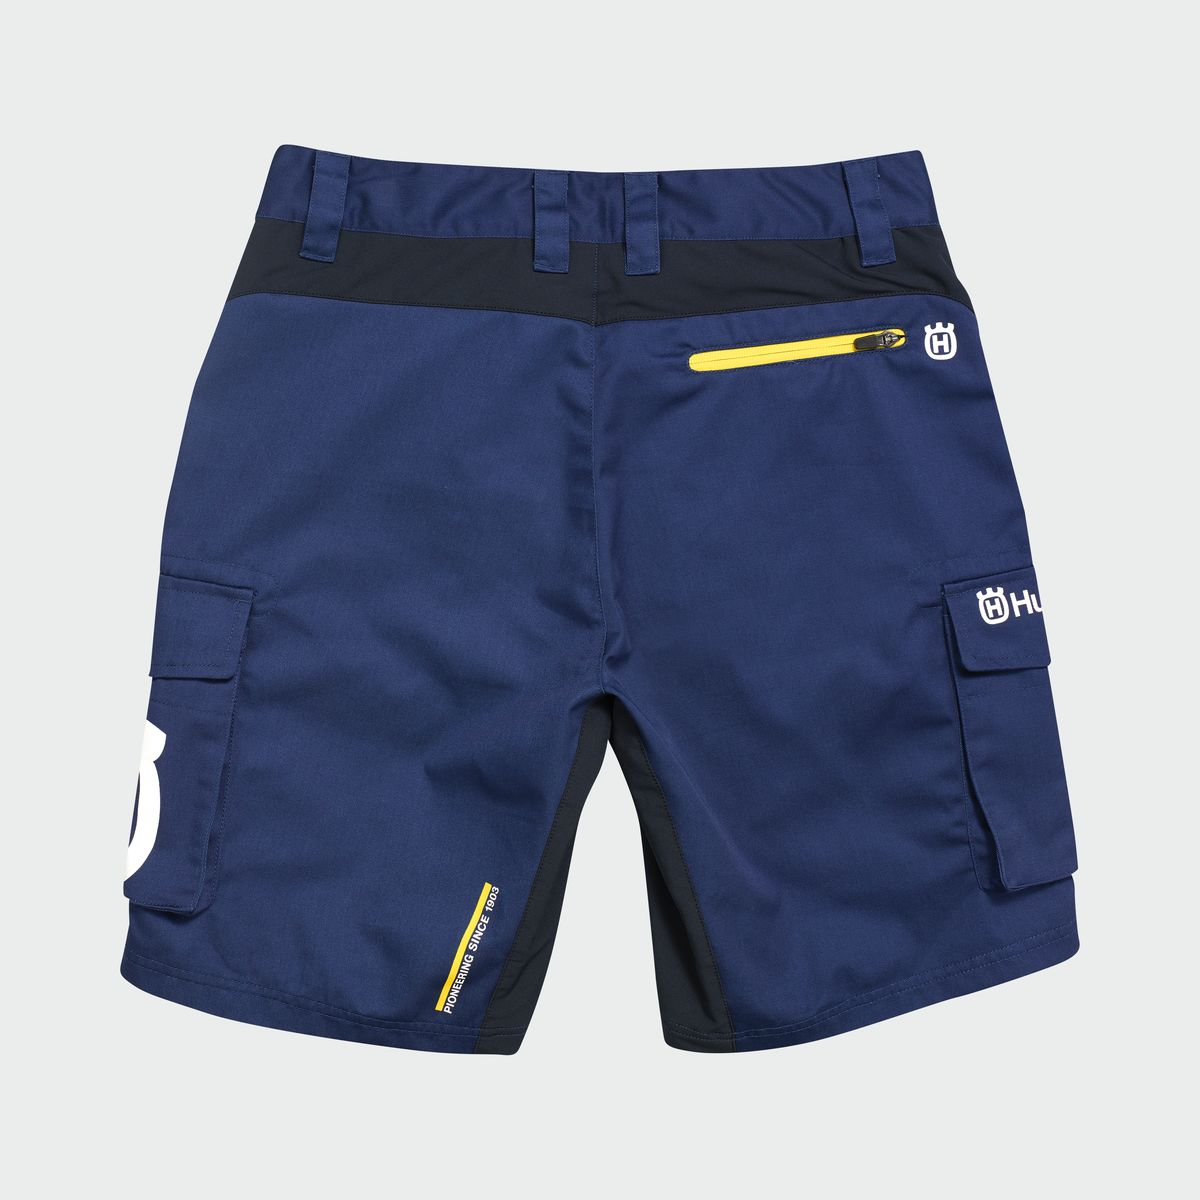 OFICIAL TEAM SHORTS 1